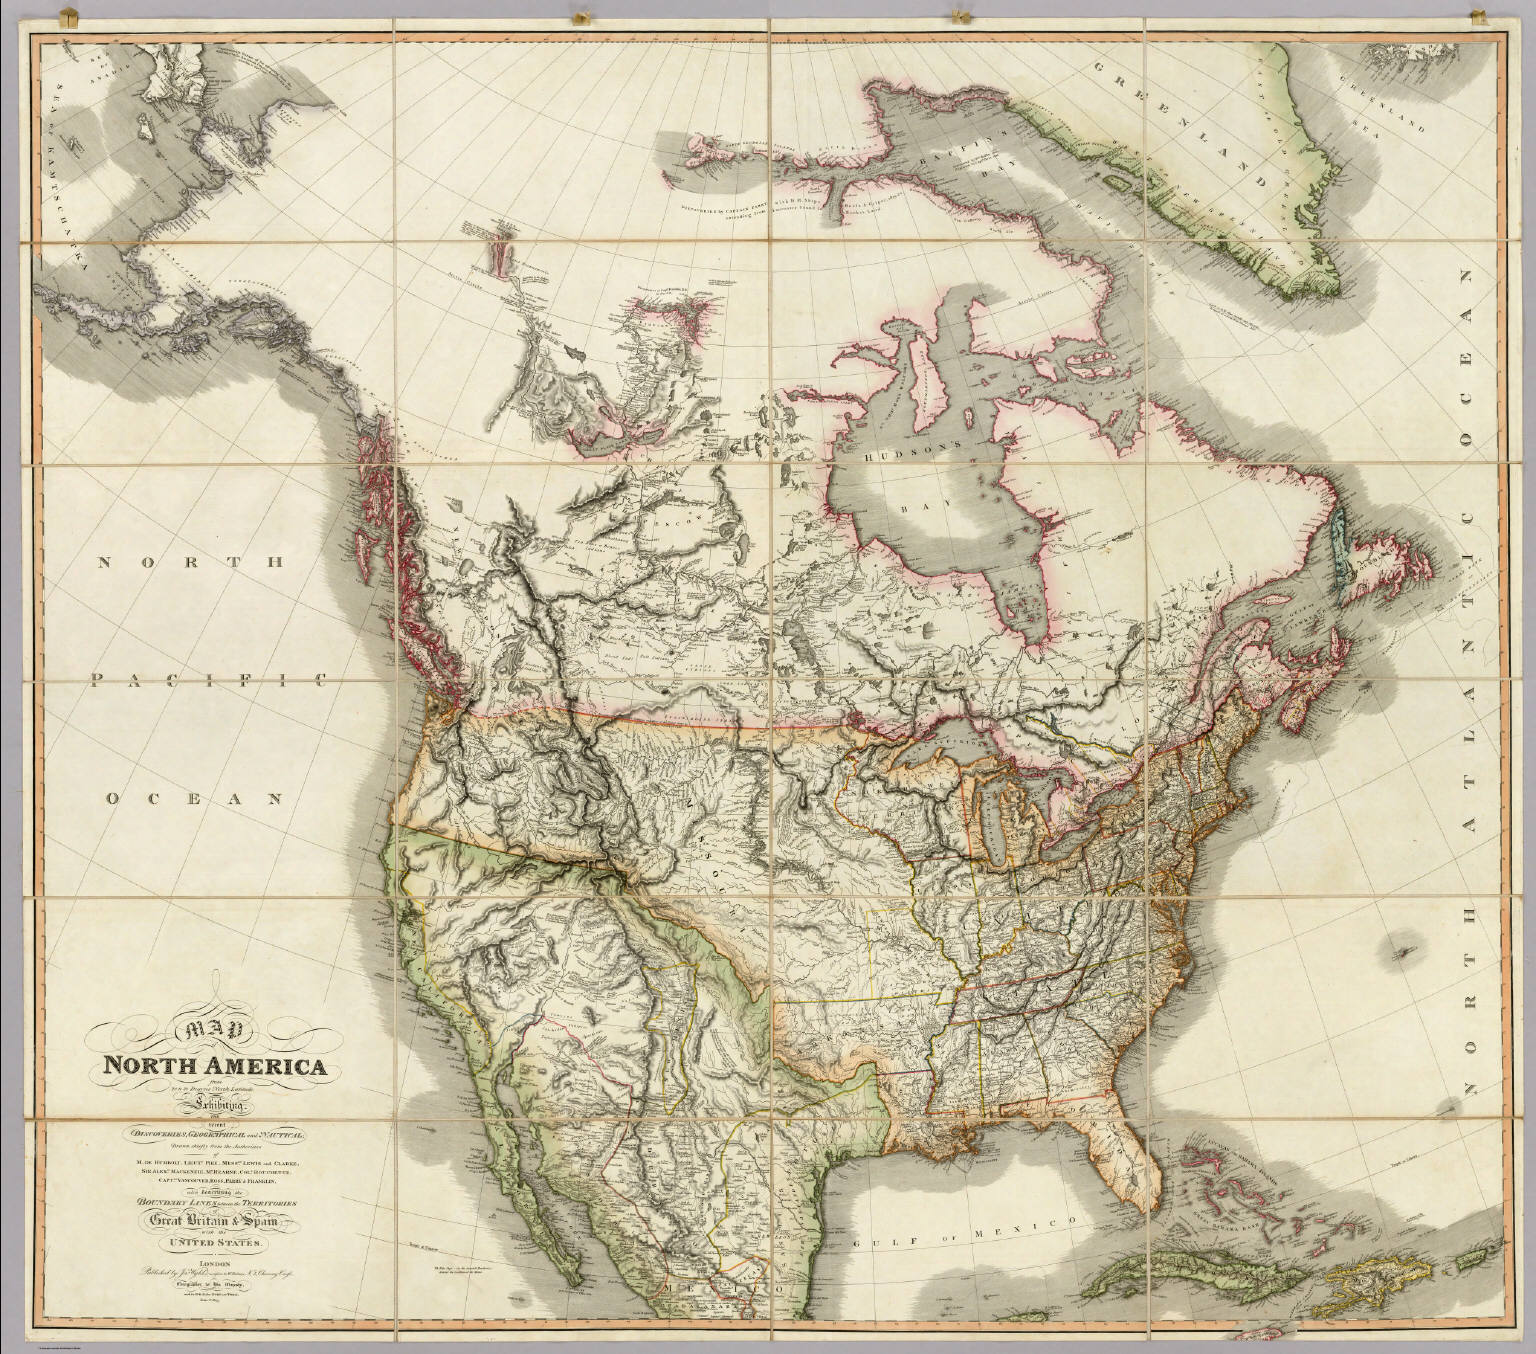 Map Of America In 1812.Map Of North America Wyld James 1812 1887 1823